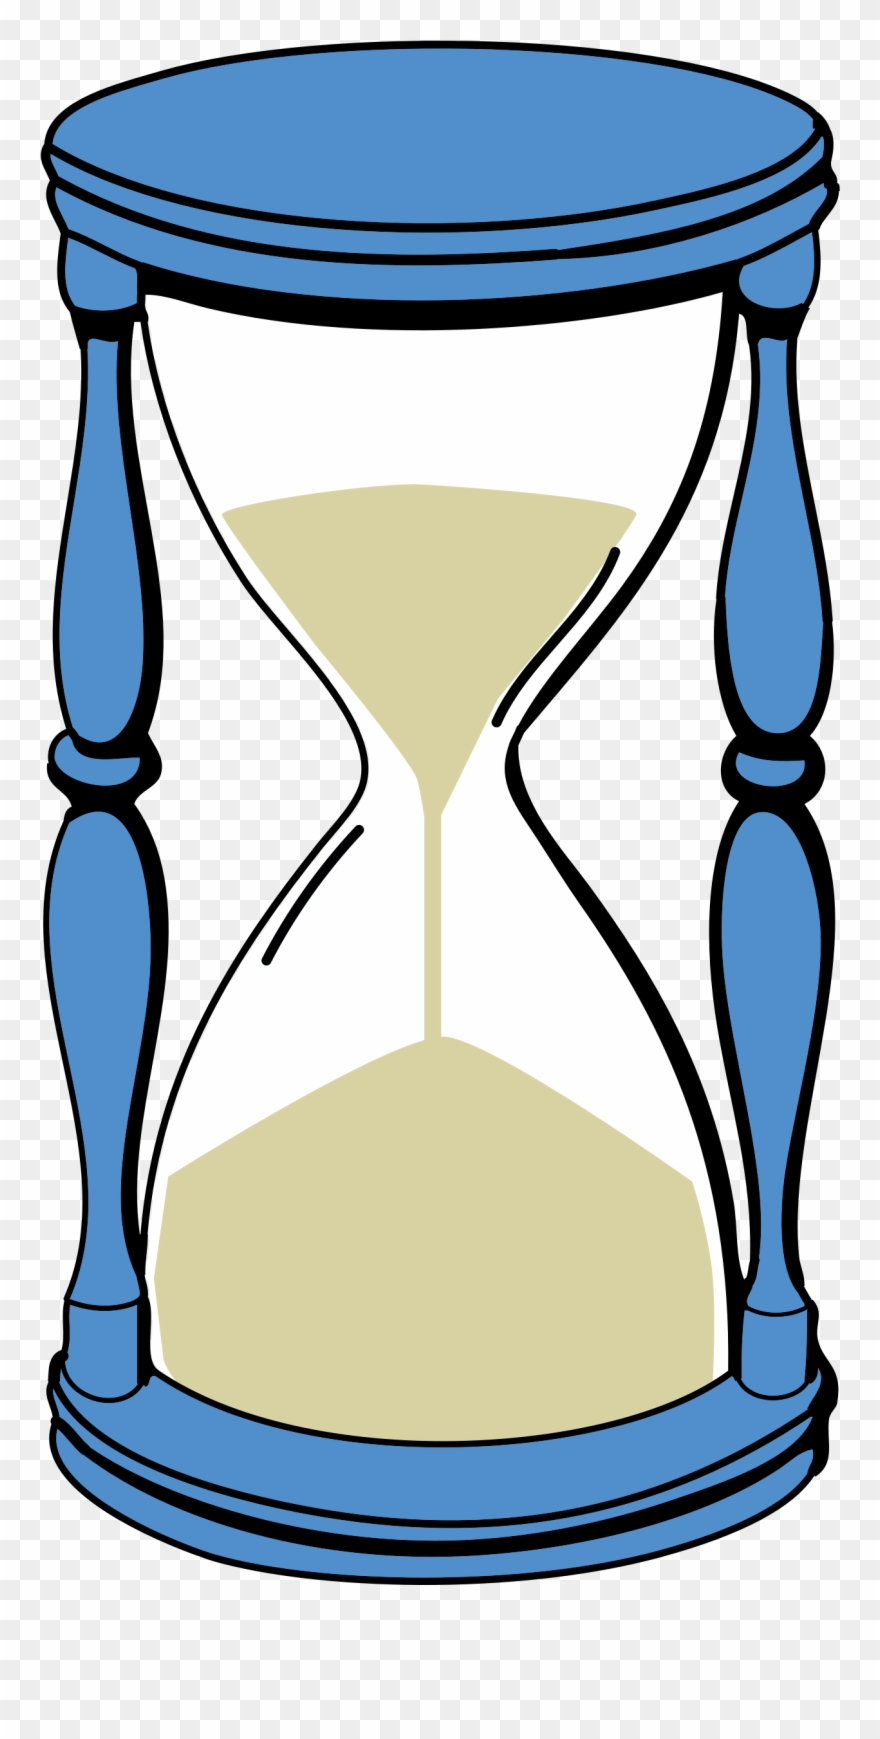 svg free Time capsule sand timer. Hourglass clipart